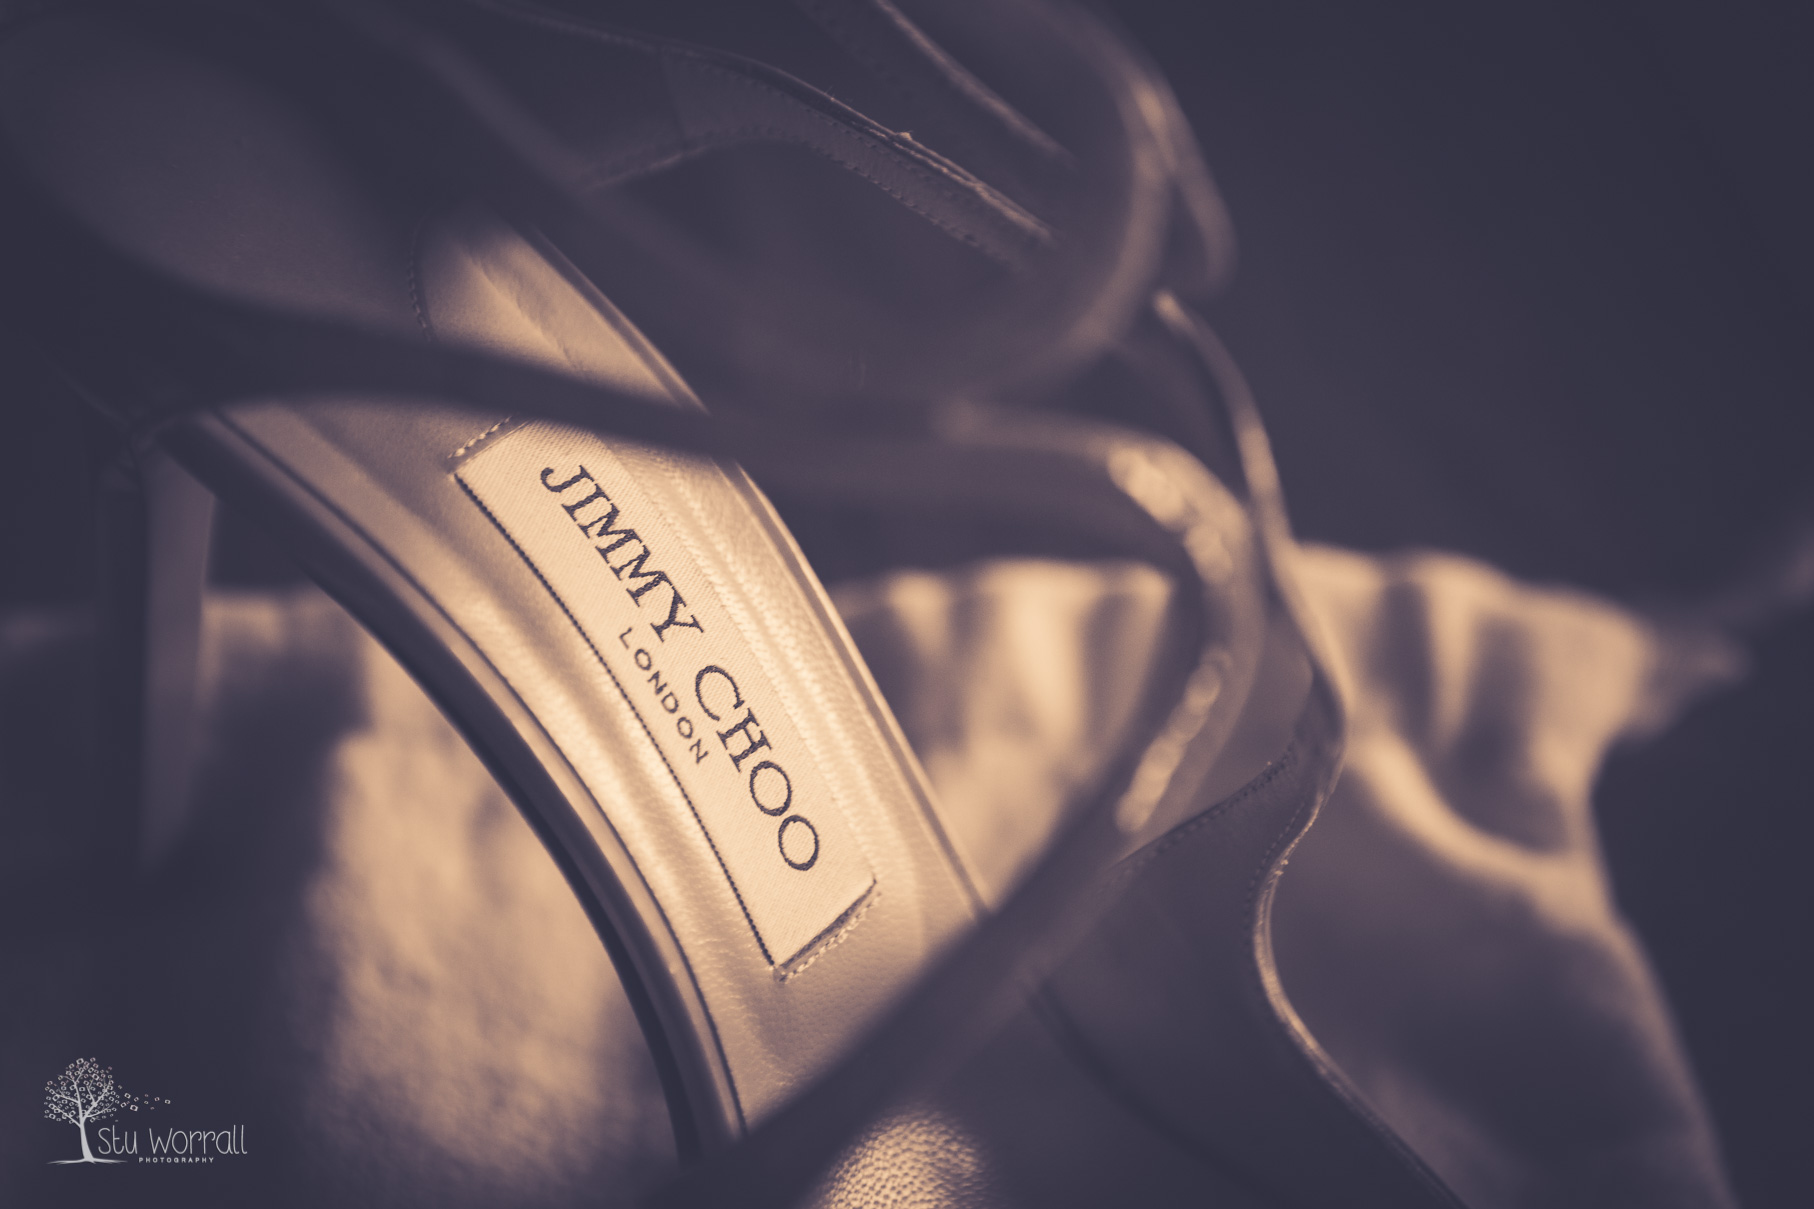 003 - Stu Worrall Photography 2015 review Jimmy Choo Shoes at Chester Abode